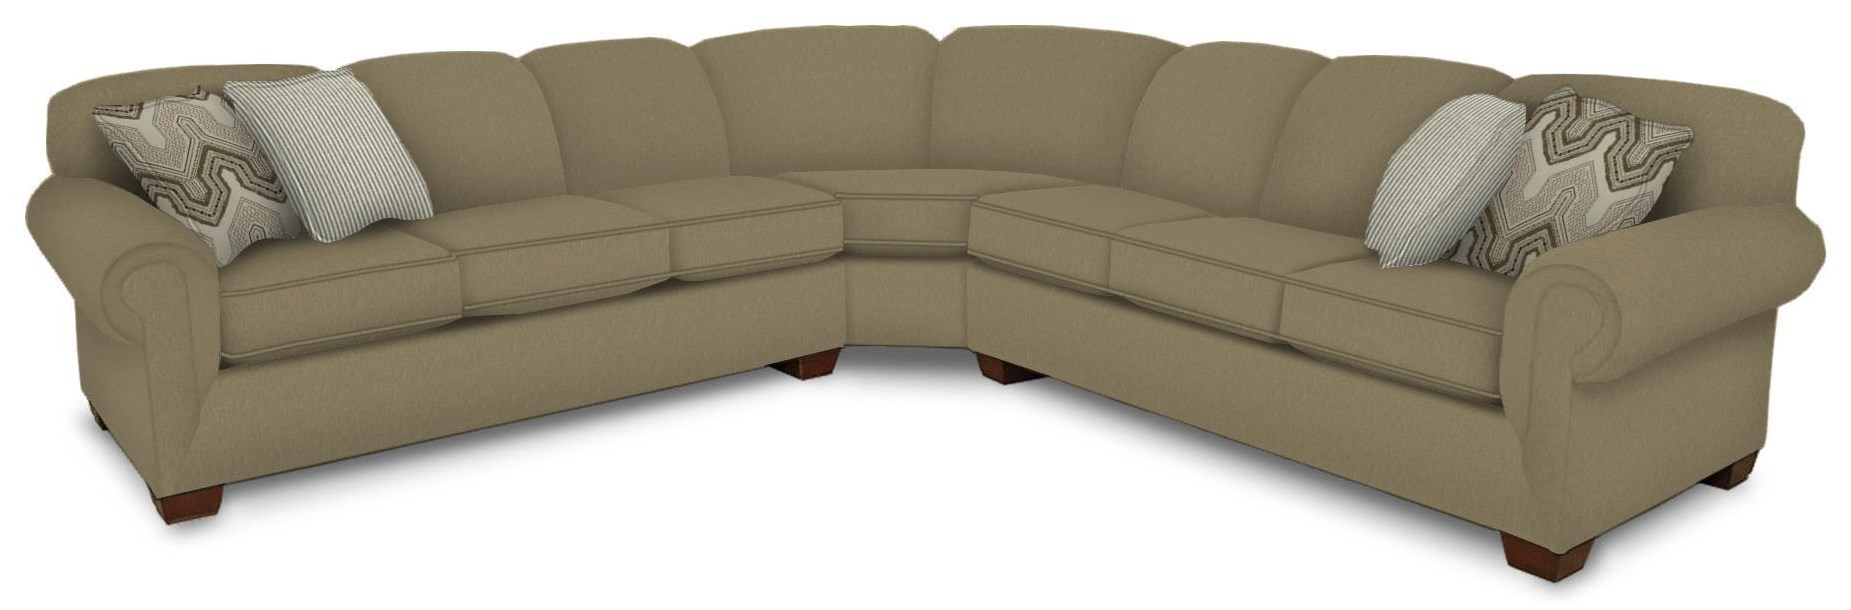 Alexvale 2 Piece Left Arm Facing Sectional by England at Johnny Janosik